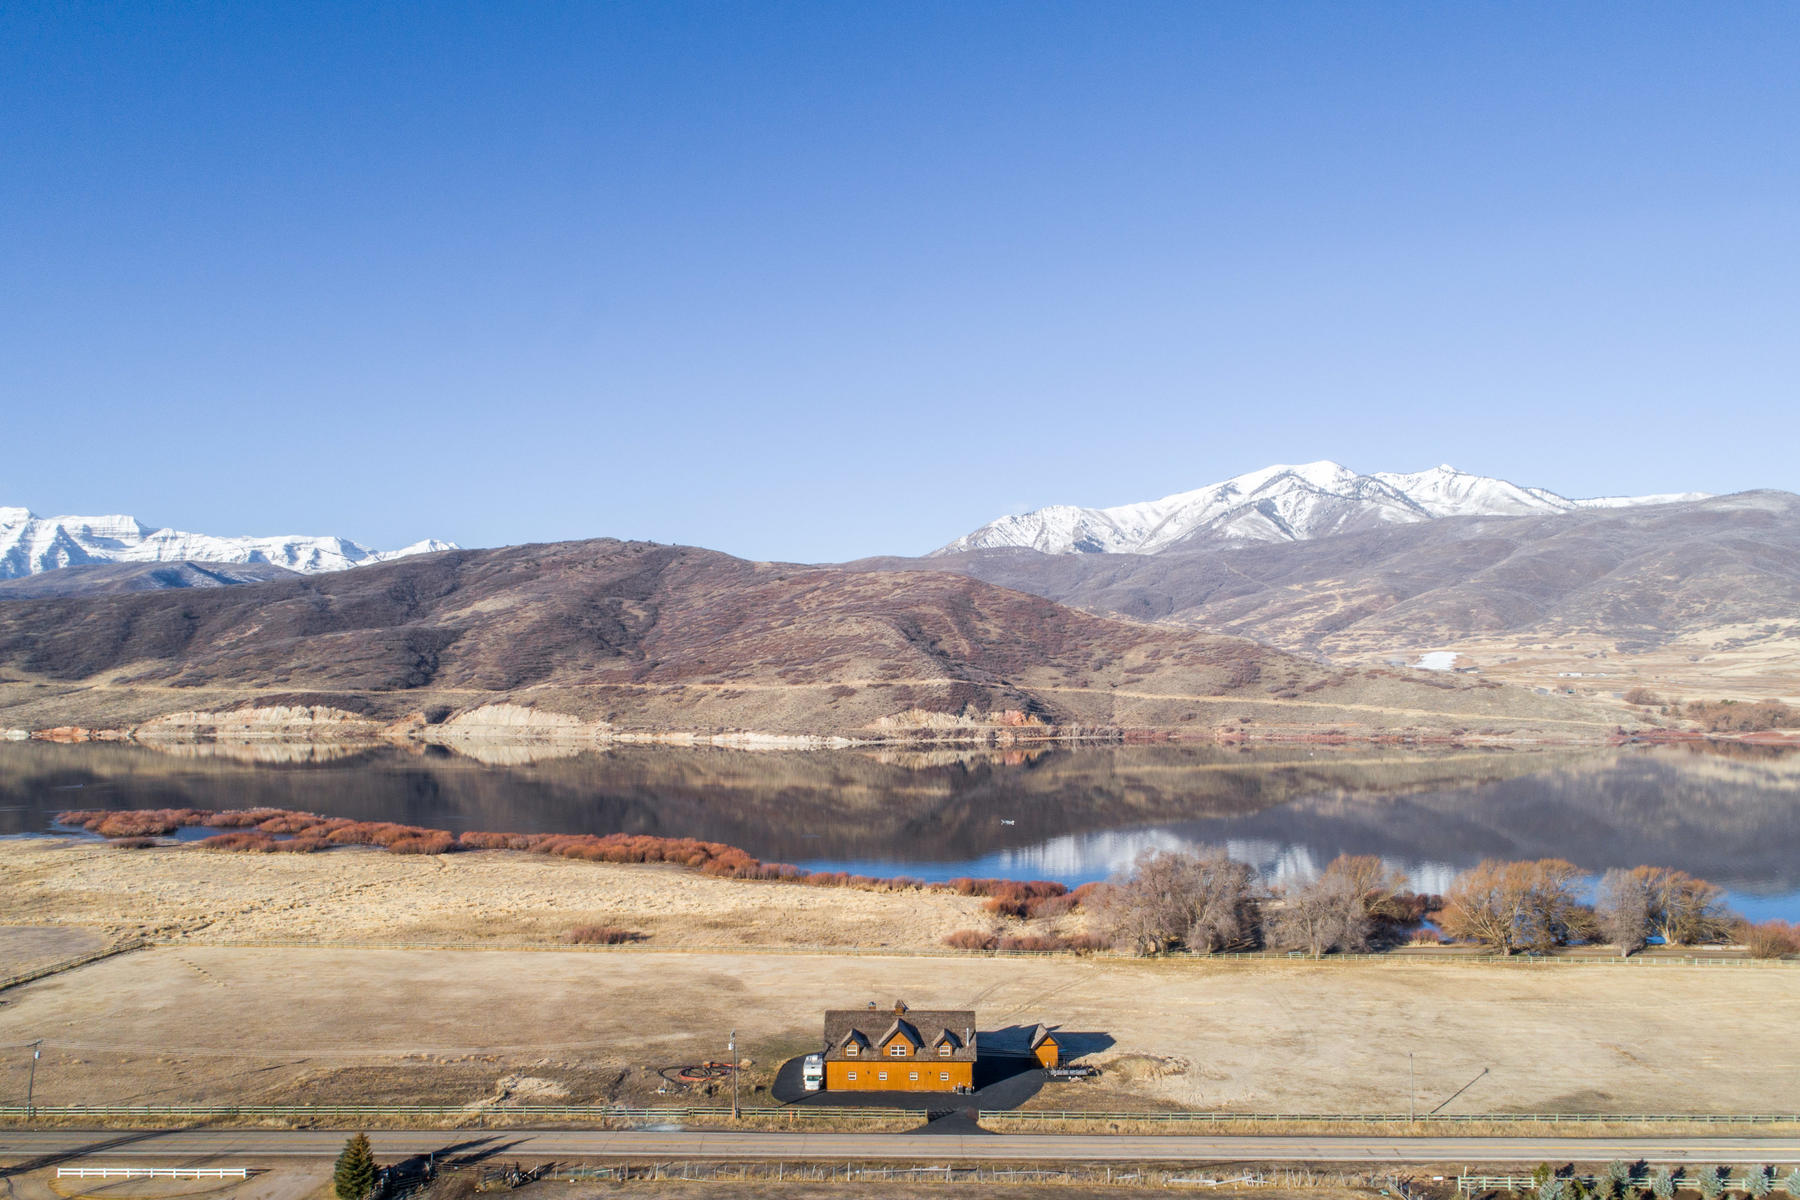 独户住宅 为 销售 在 8 Plus Acres And Home On Deer Creek Lake Adjacent To The Provo River 2790 South 3600 West 查尔斯顿, 犹他州 84032 美国